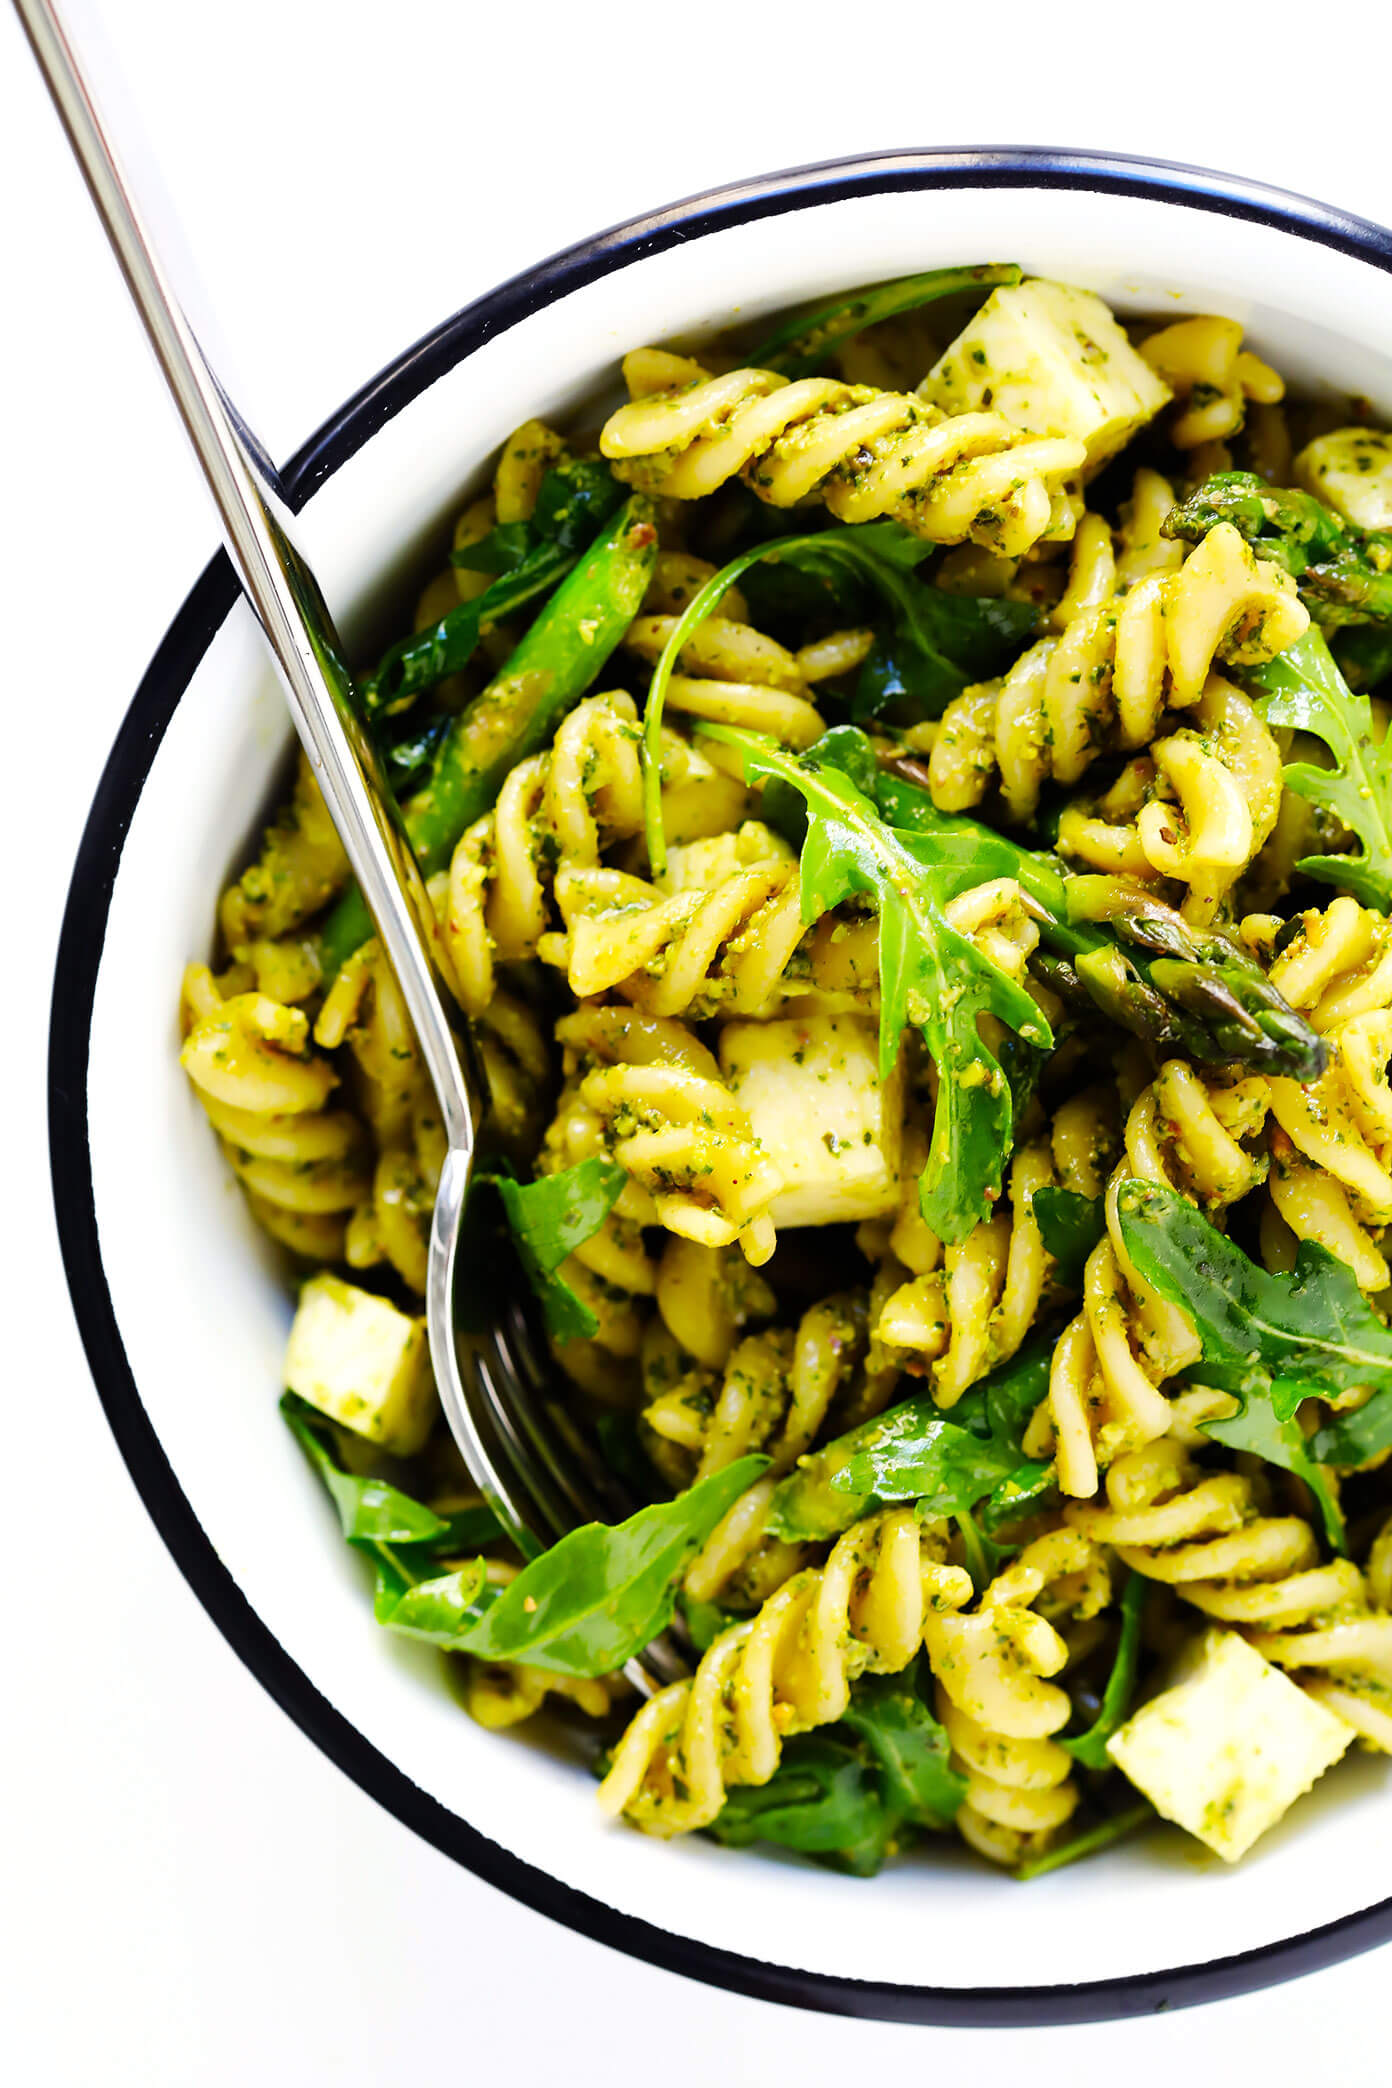 Pistachio Pesto Pasta Salad Recipe